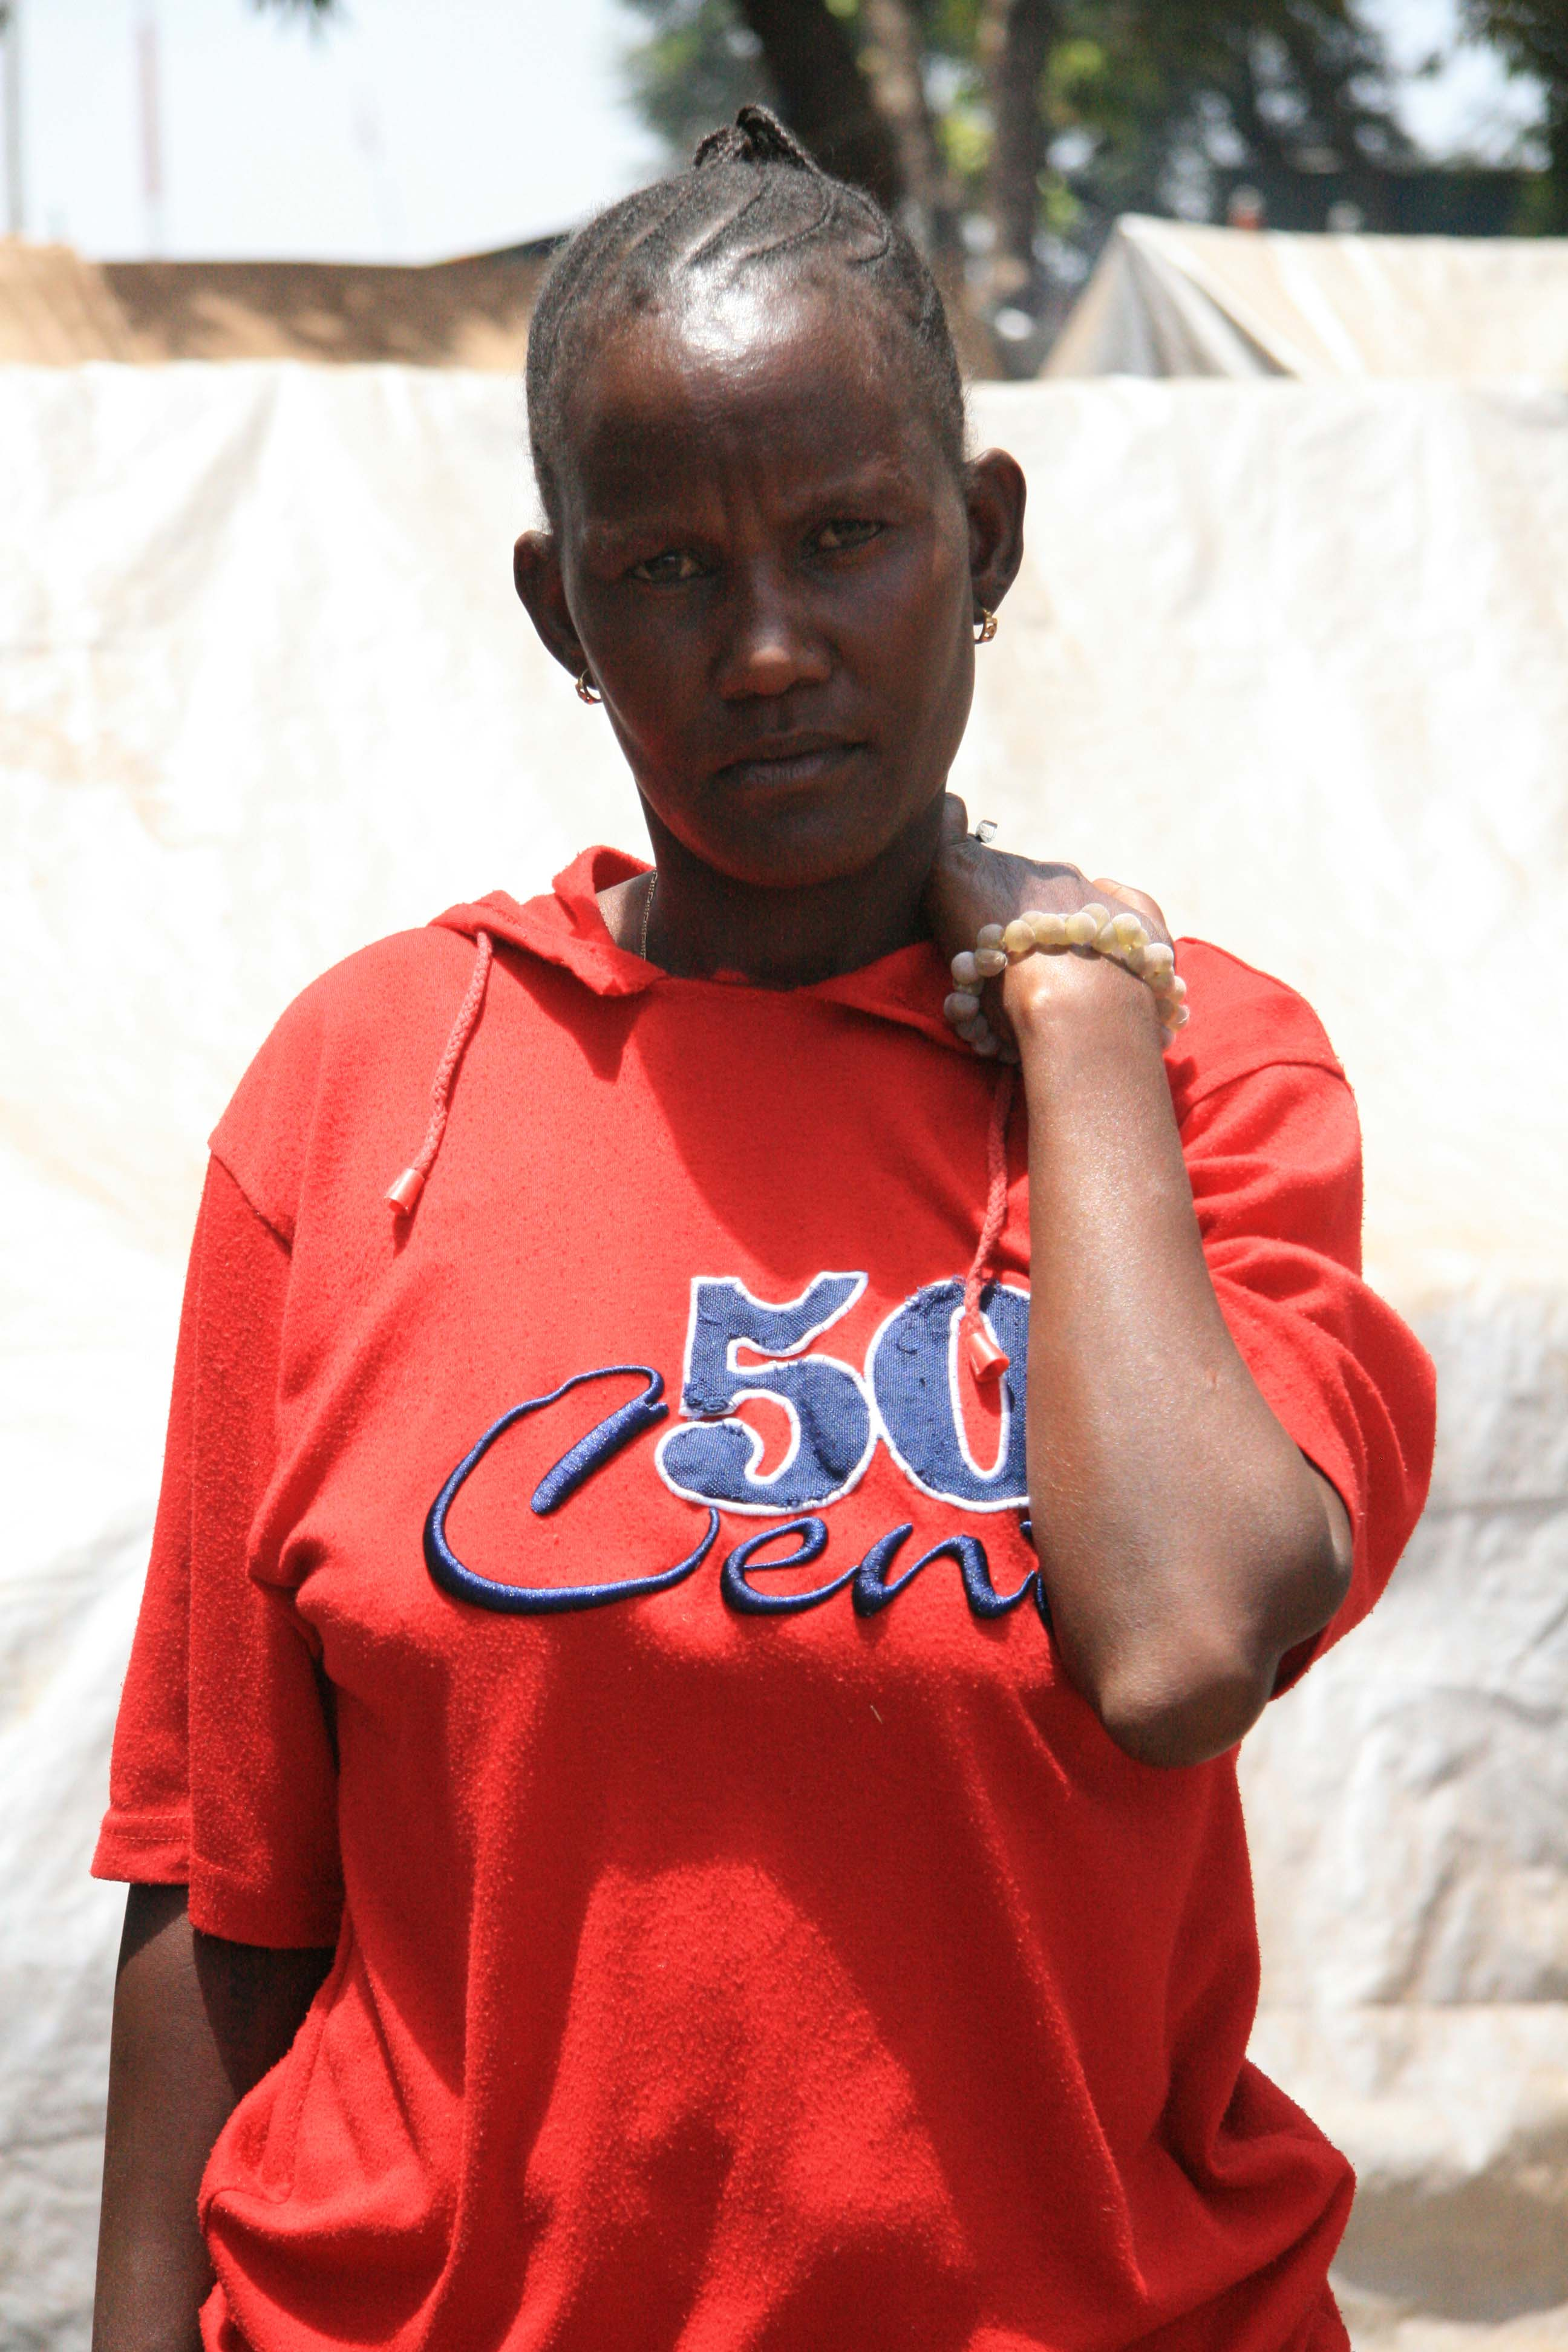 Nancy Wanjiru, 32, has lived in Nairobi's Mathare slum area since birth.